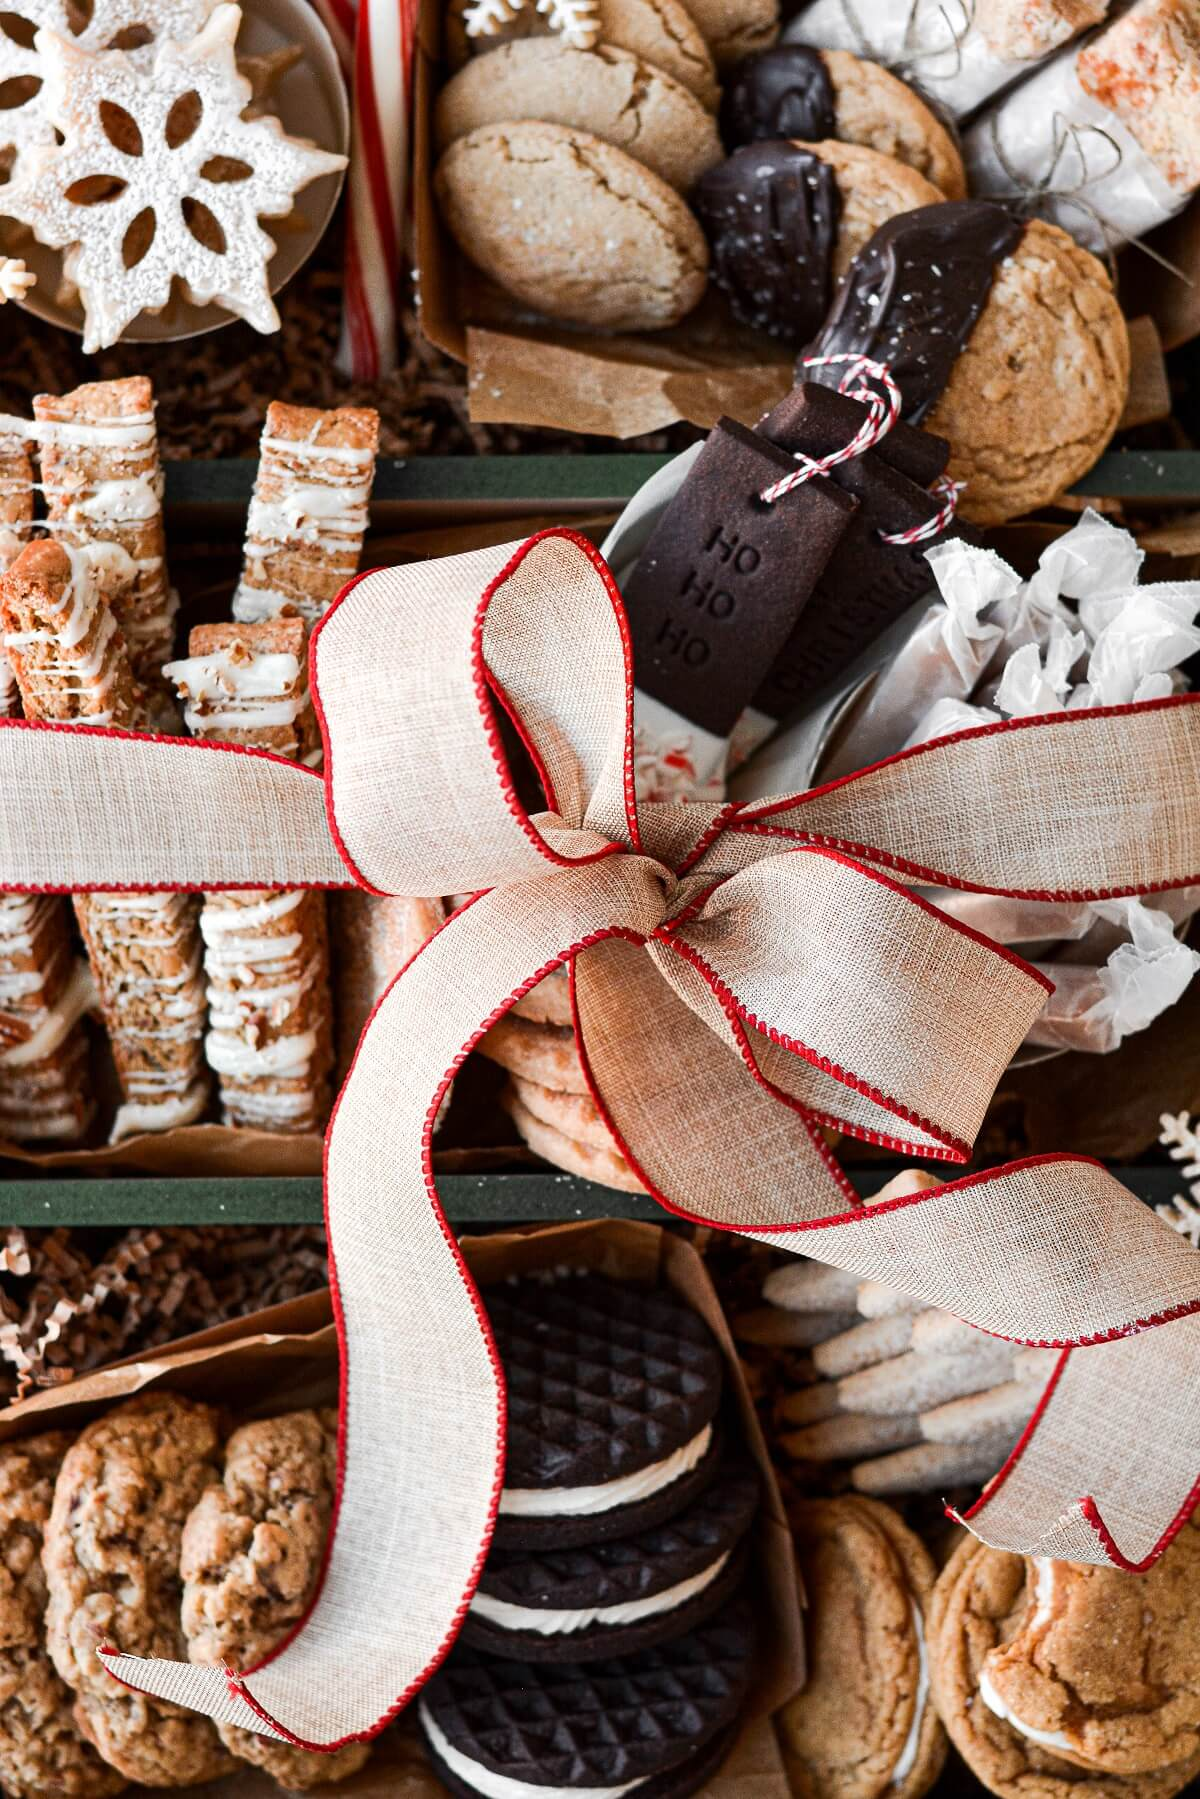 A box of Christmas cookies tied with a ribbon.